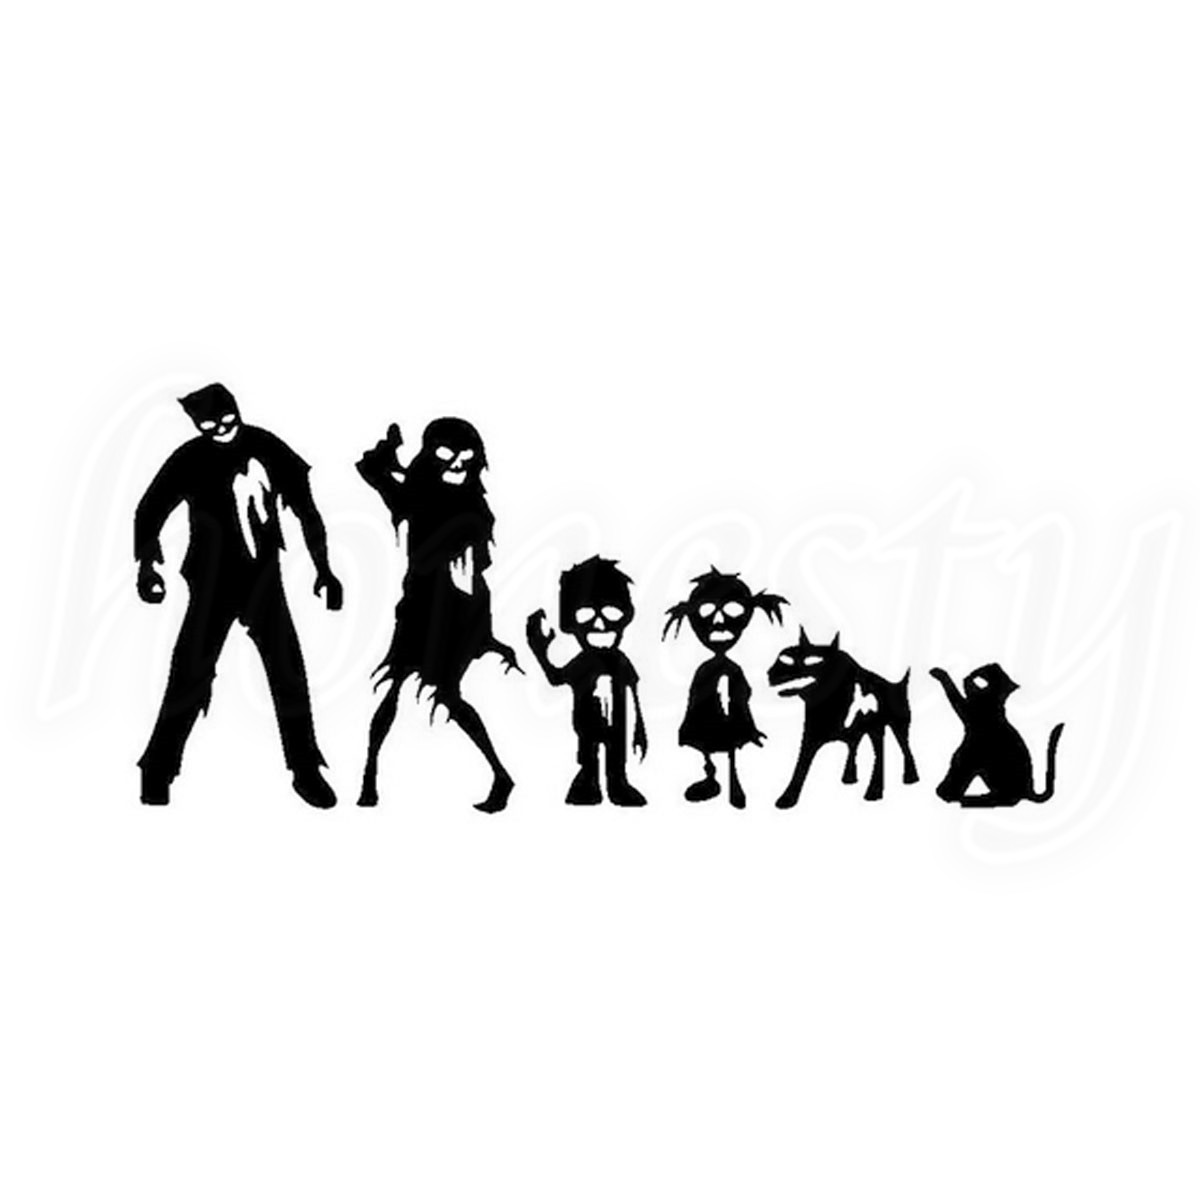 Funny Zombie Family Laptop Window Glass Decor Wall Decal Vinyl Car Sticker Black Bumper Home Auto Gift New